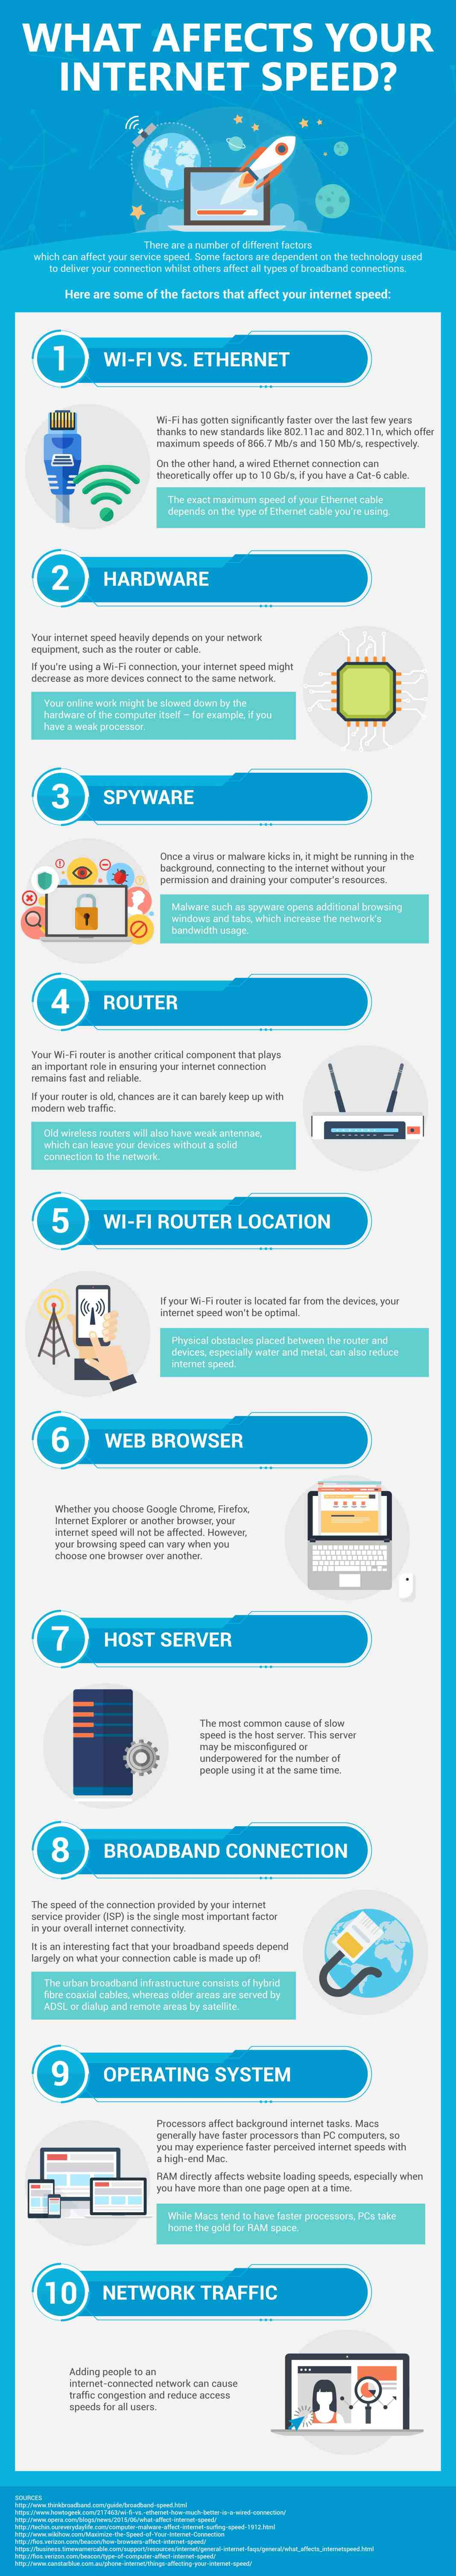 What Affects Your Internet Speed Infographic